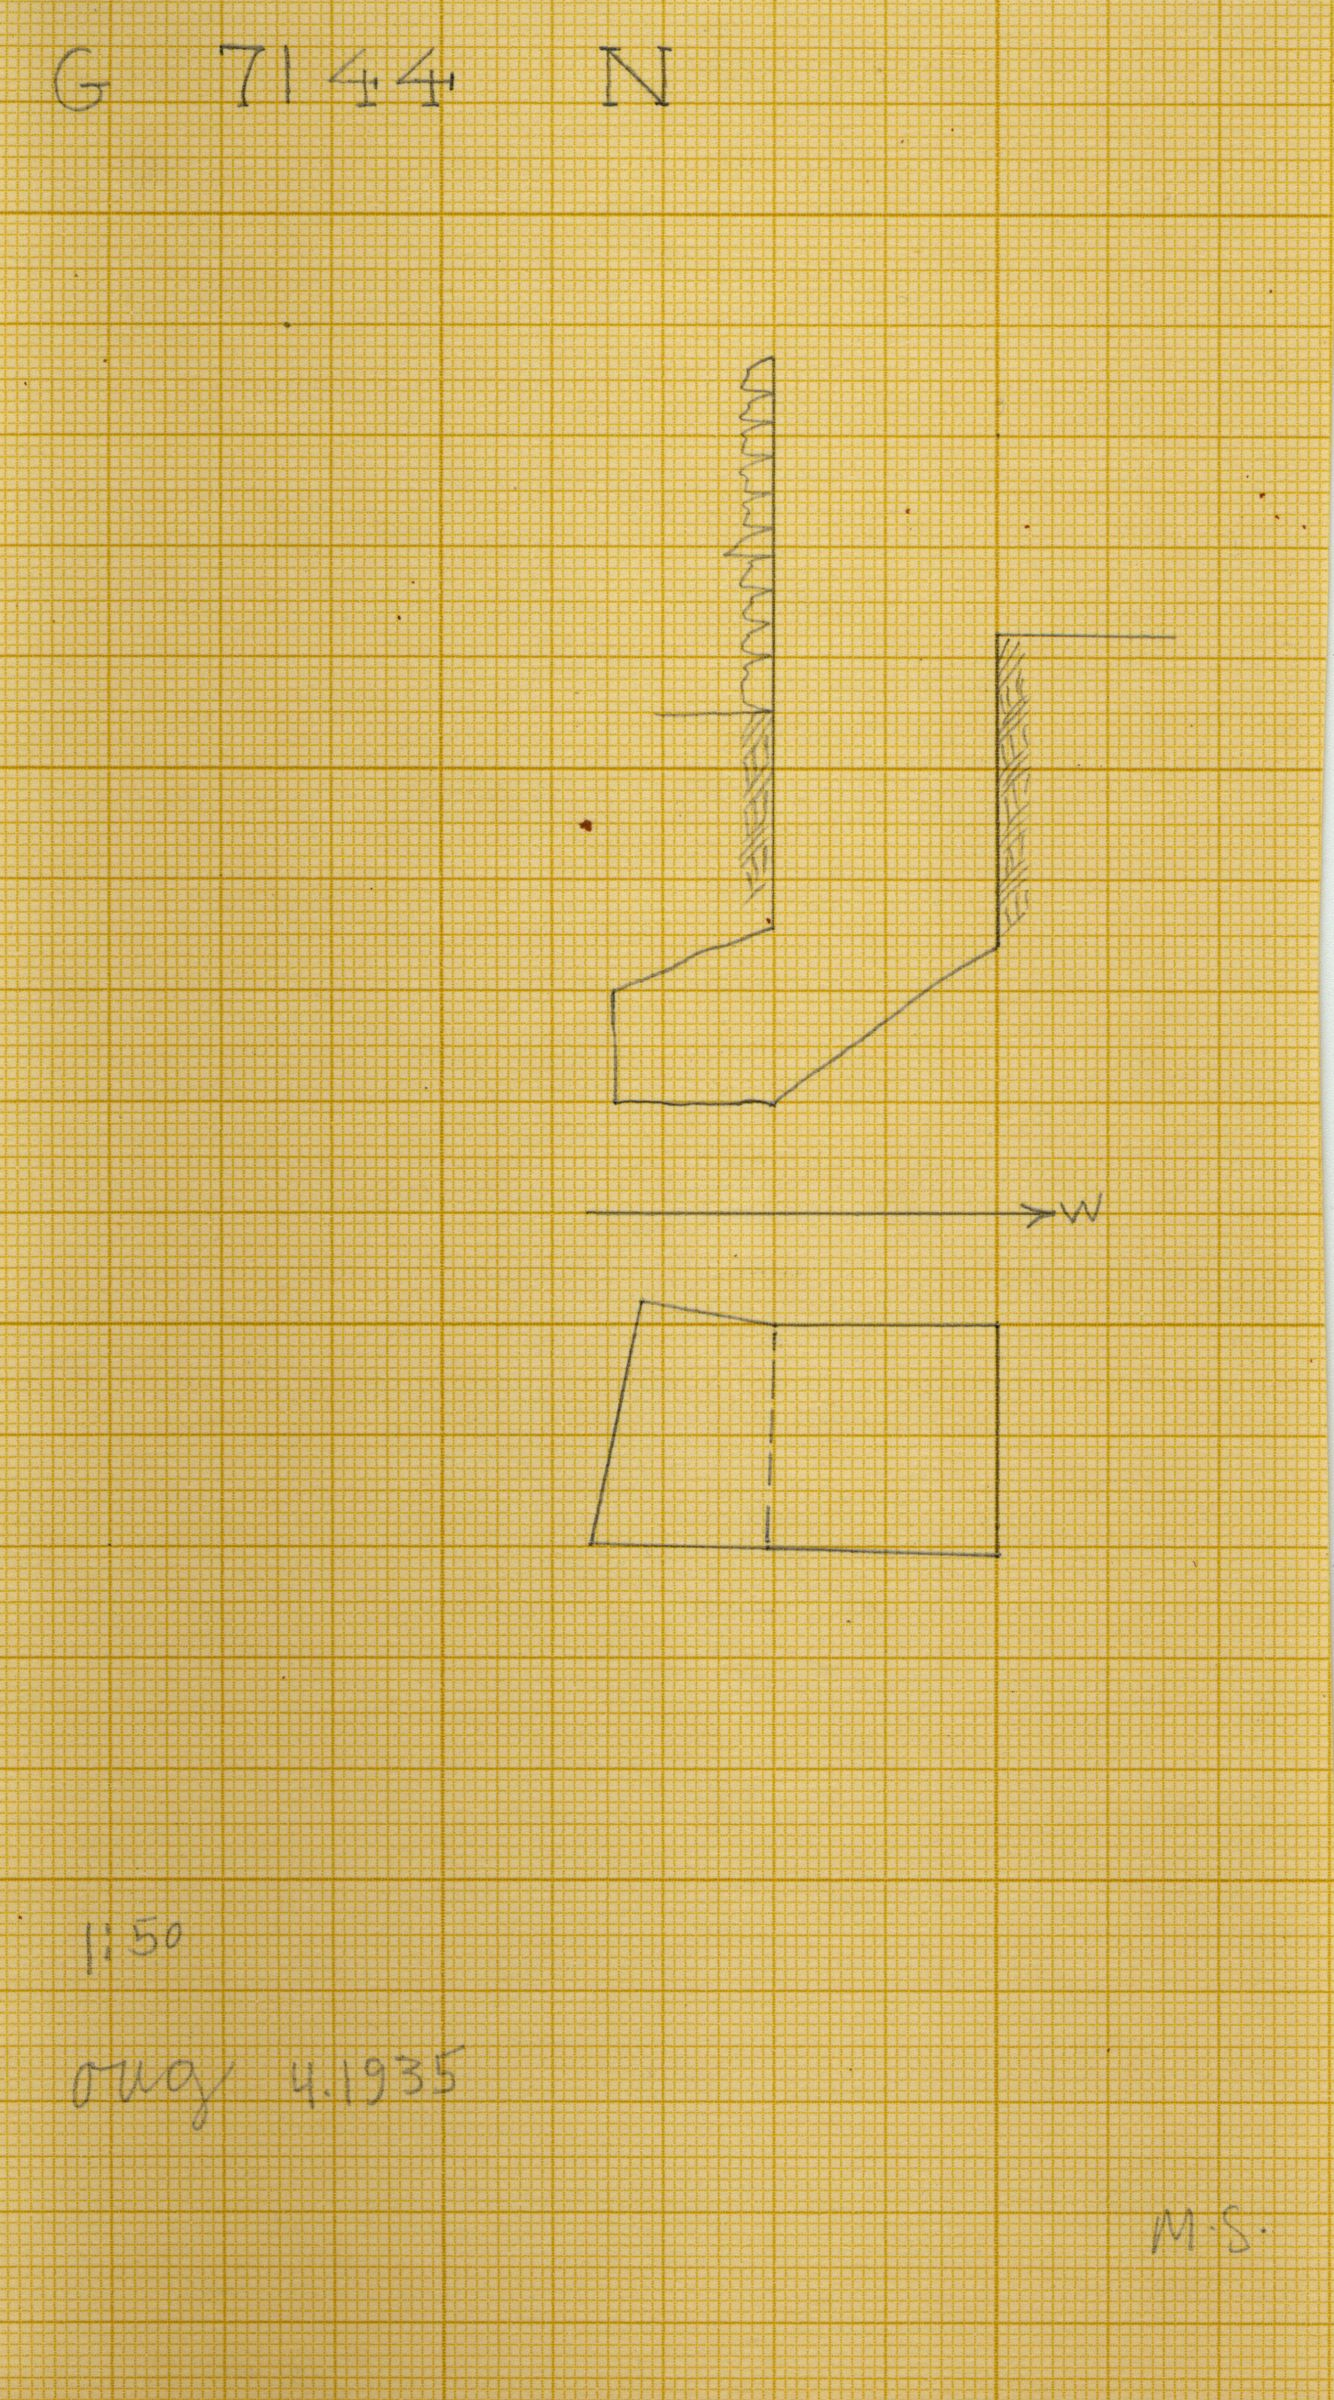 Maps and plans: G 7144, Shaft N